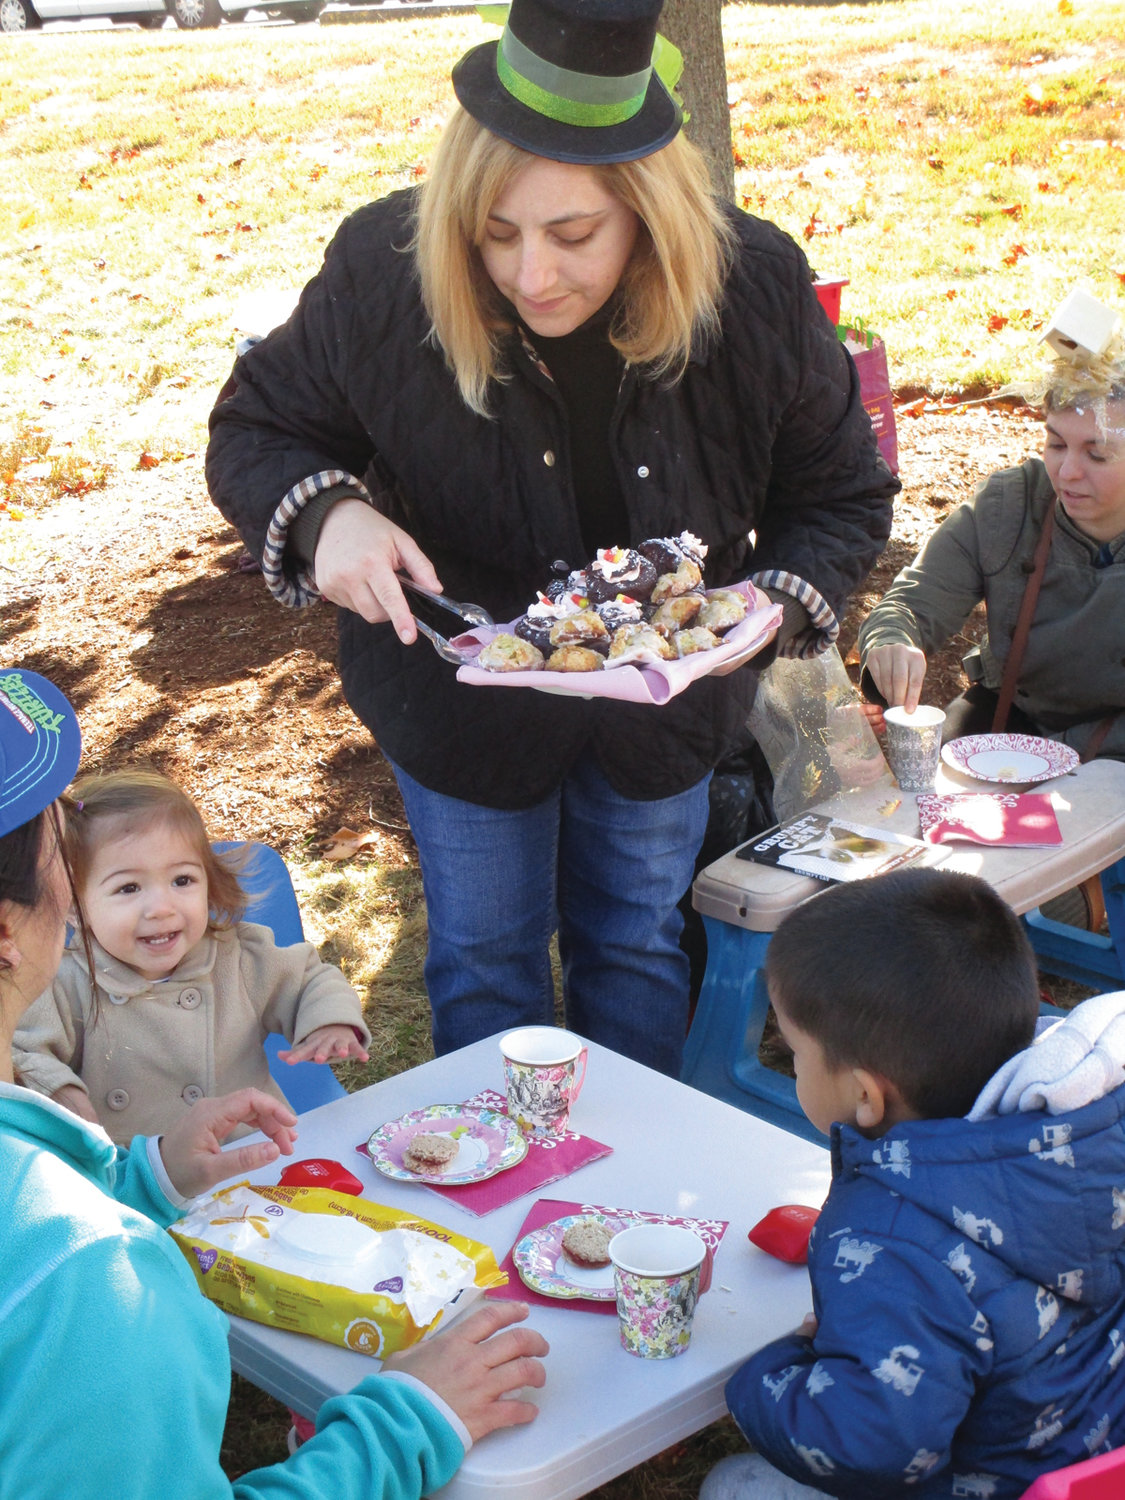 SPECIAL SERVING: Theresa McFarlane of Little Learners Playgroup serves up cupcakes to Abdiel Urizar and Elianny Matareno during the tea party.